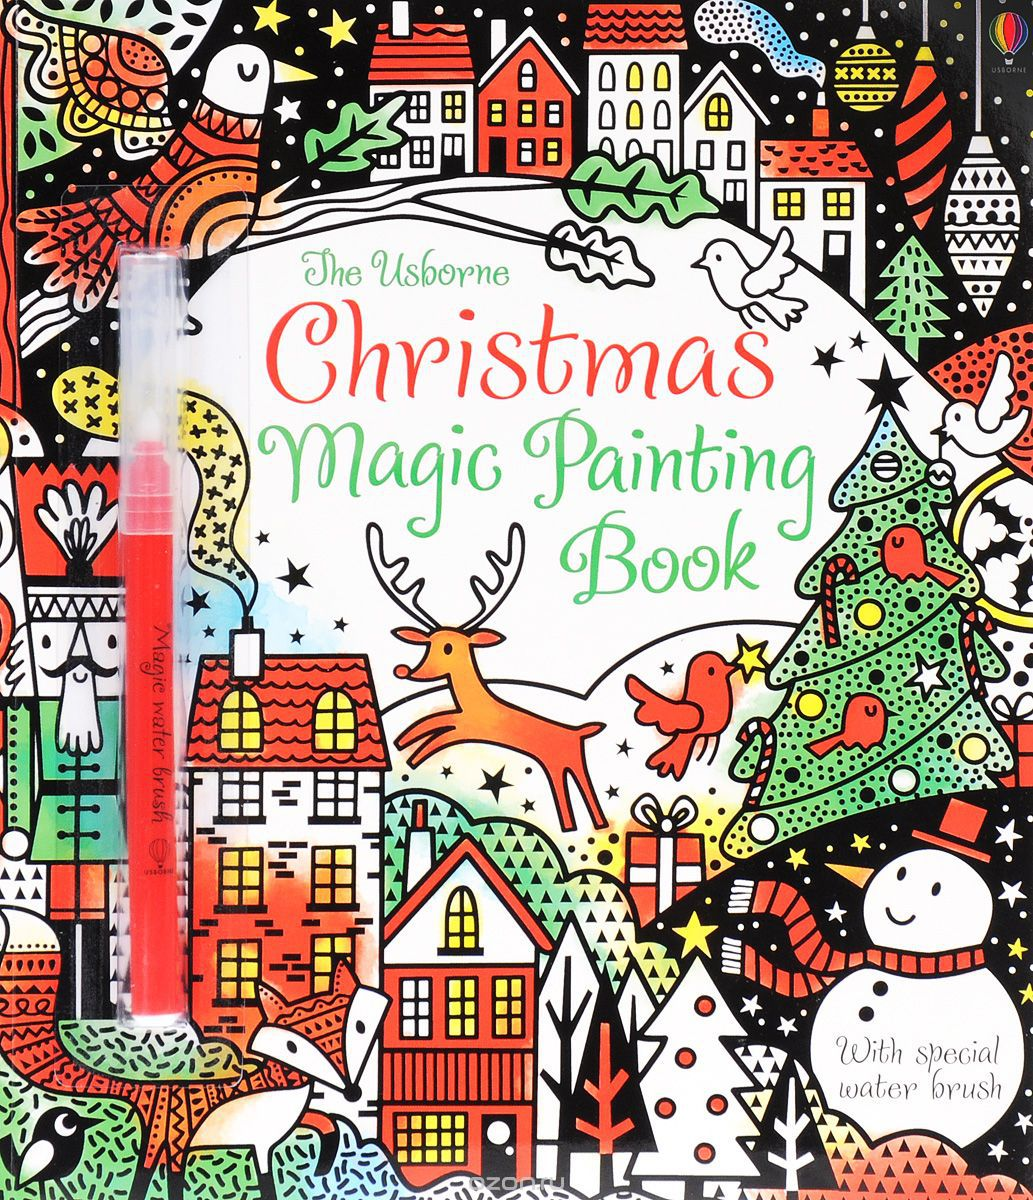 The Usborne Christmas Magic Painting Book (+ фломастер)